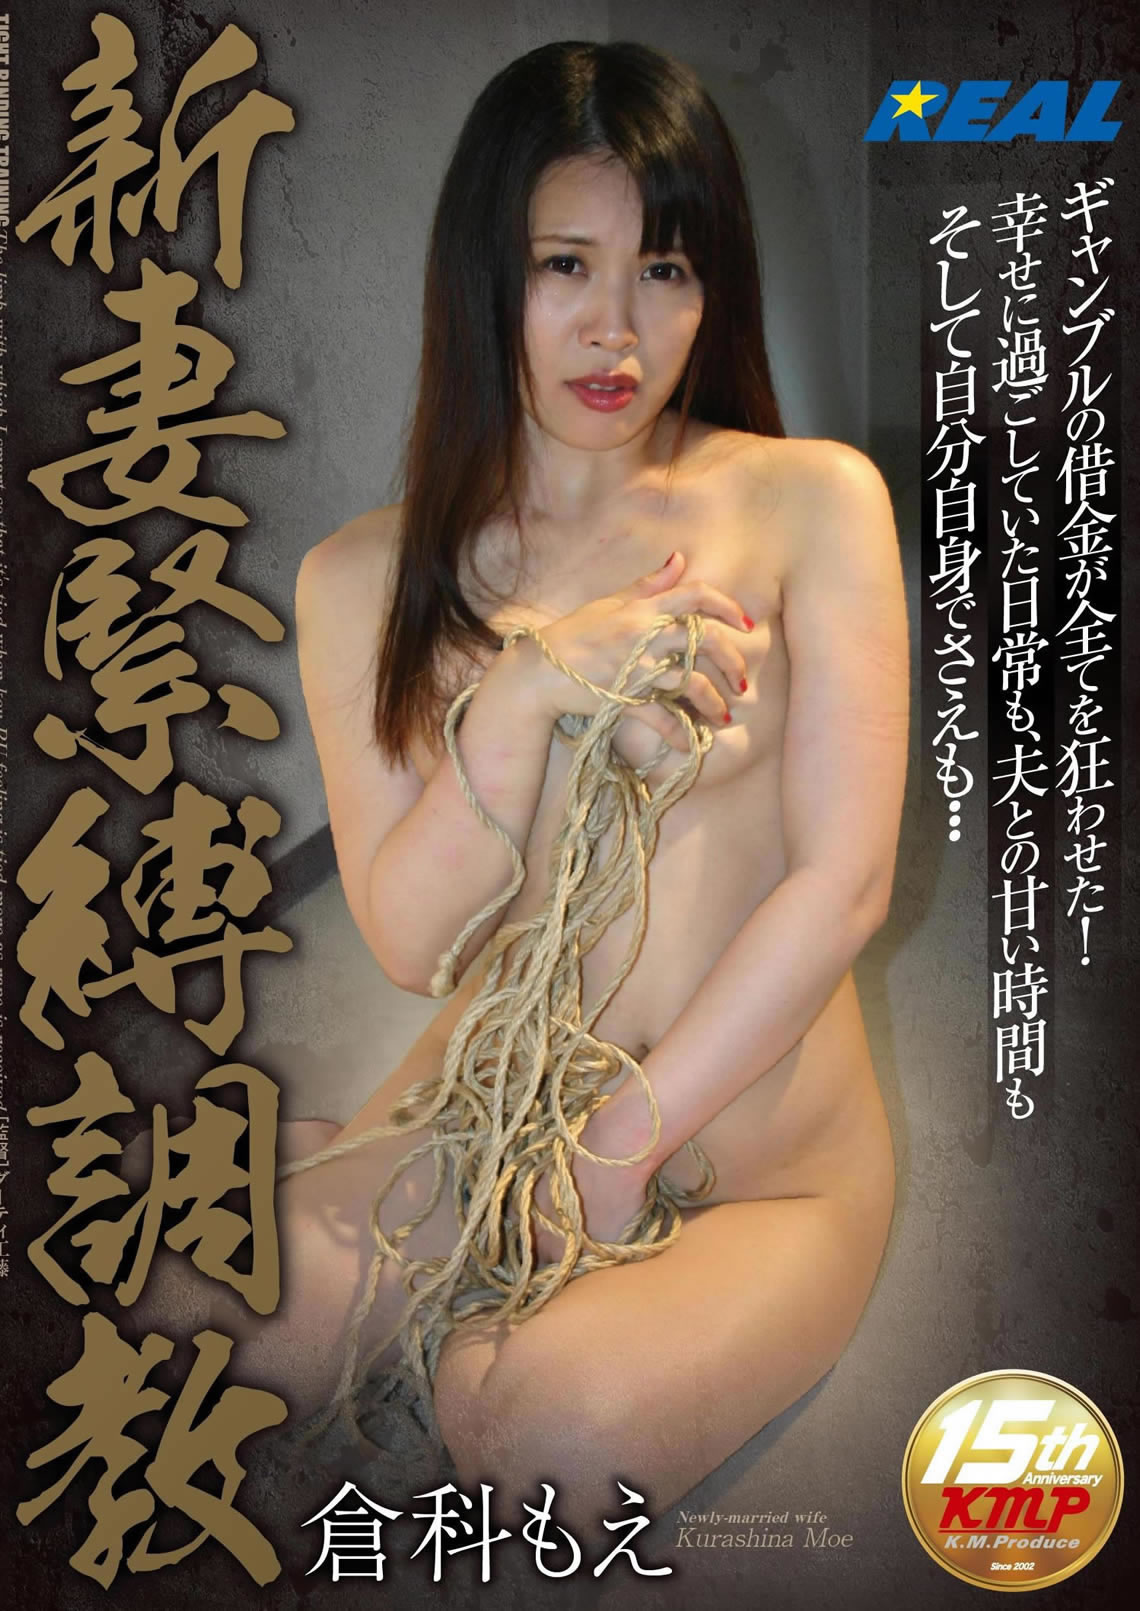 Newlywed Wife's Bondage Sexual Training, Moe Kurashina